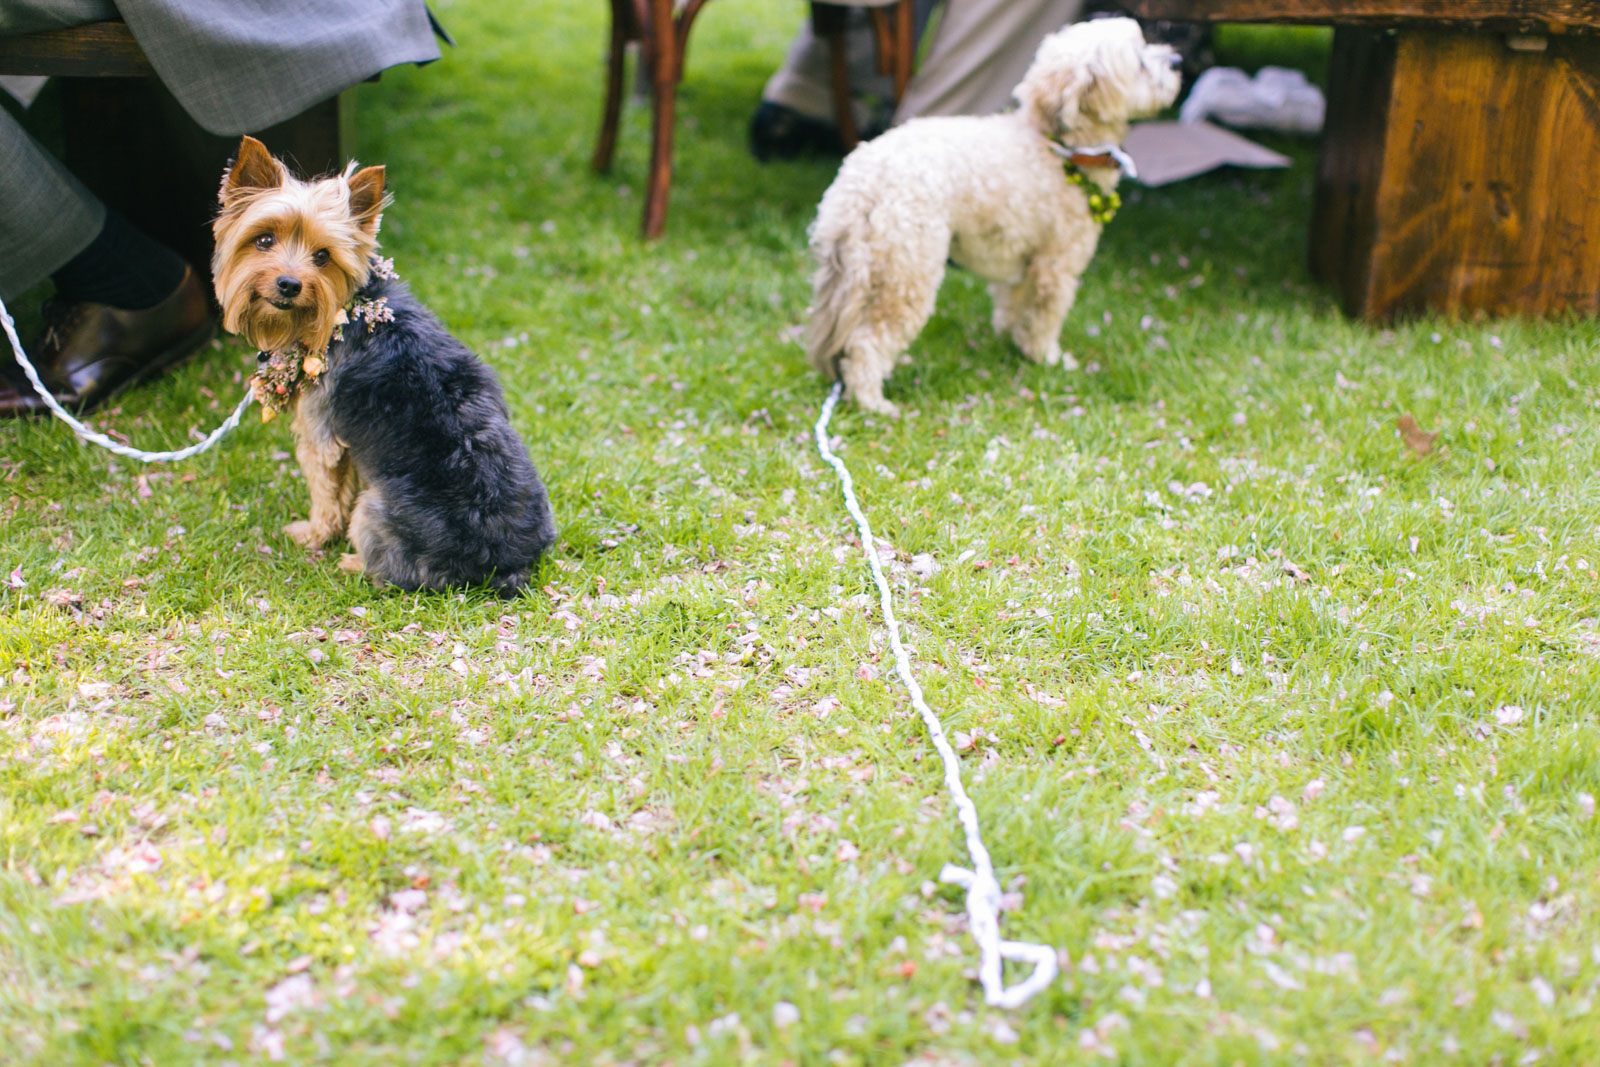 dogs playing in the grass during wedding reception at dog-friendly outdoor wedding venue near Boston